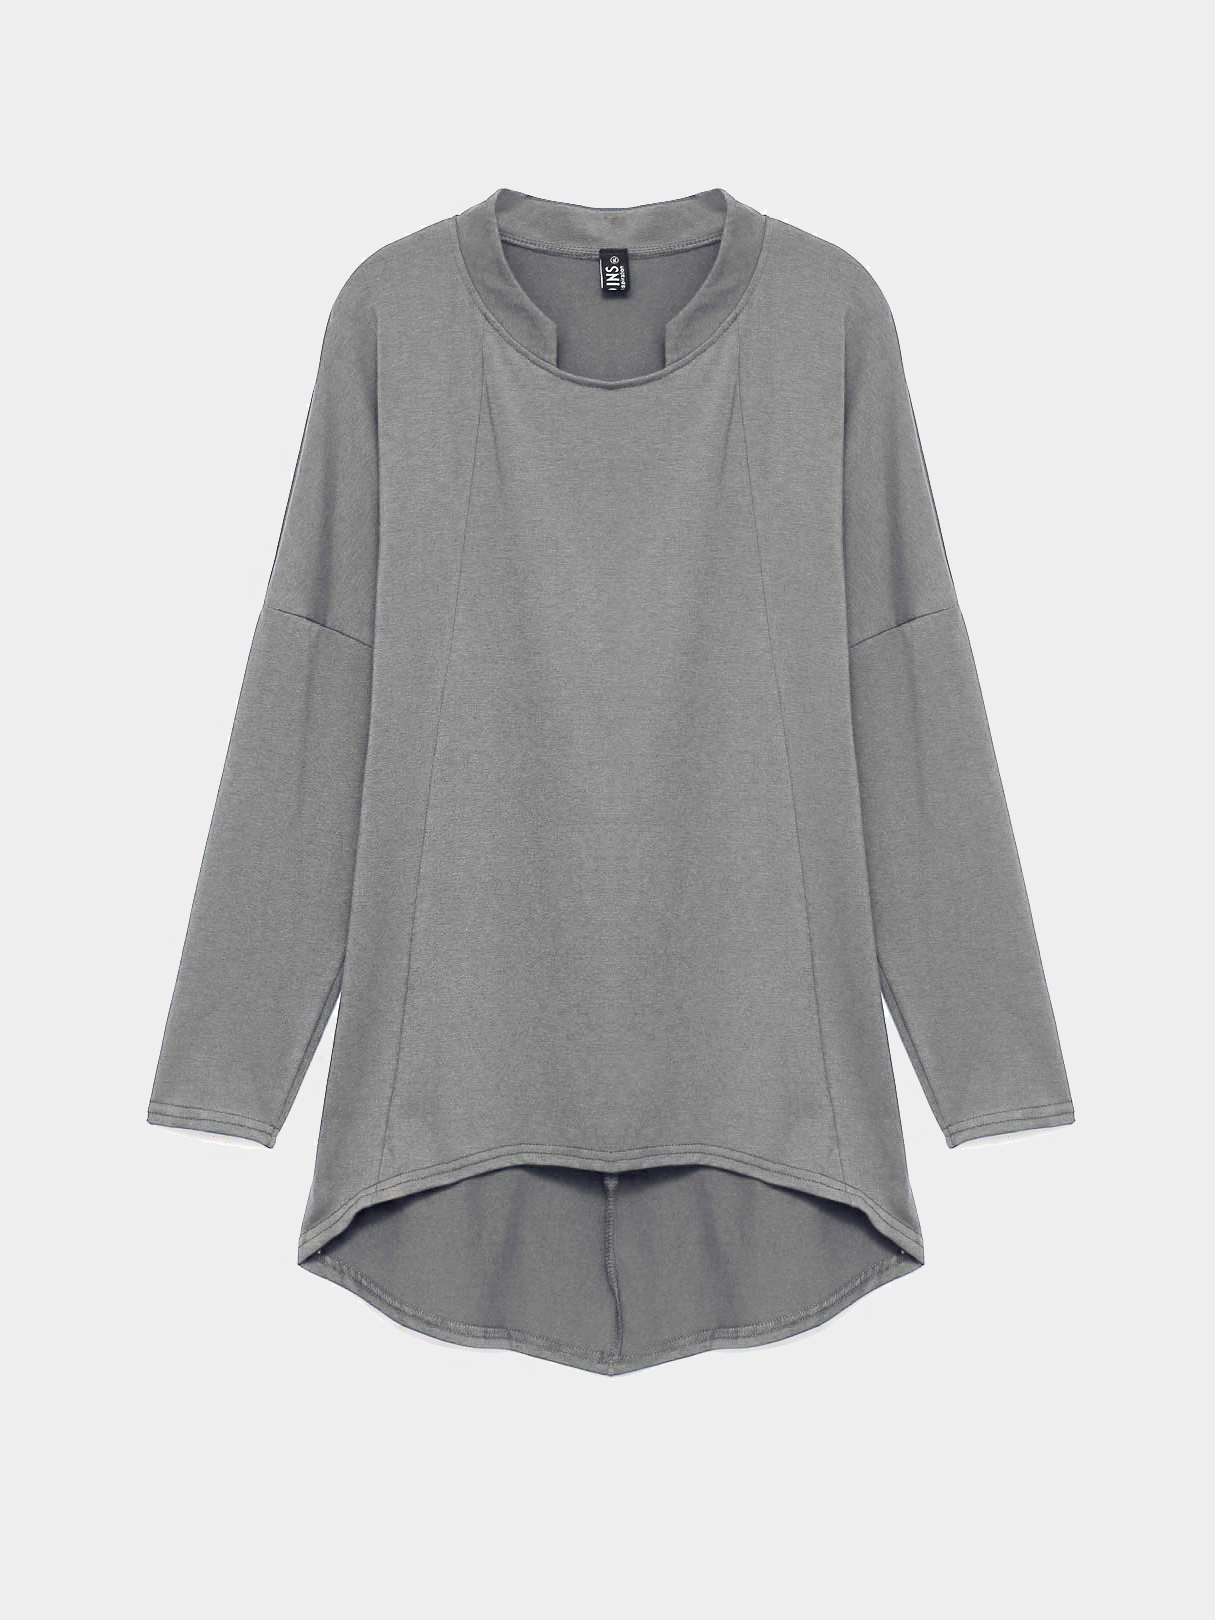 Plus Size Long Sleeve Top with Curved Hem in Dark Grey